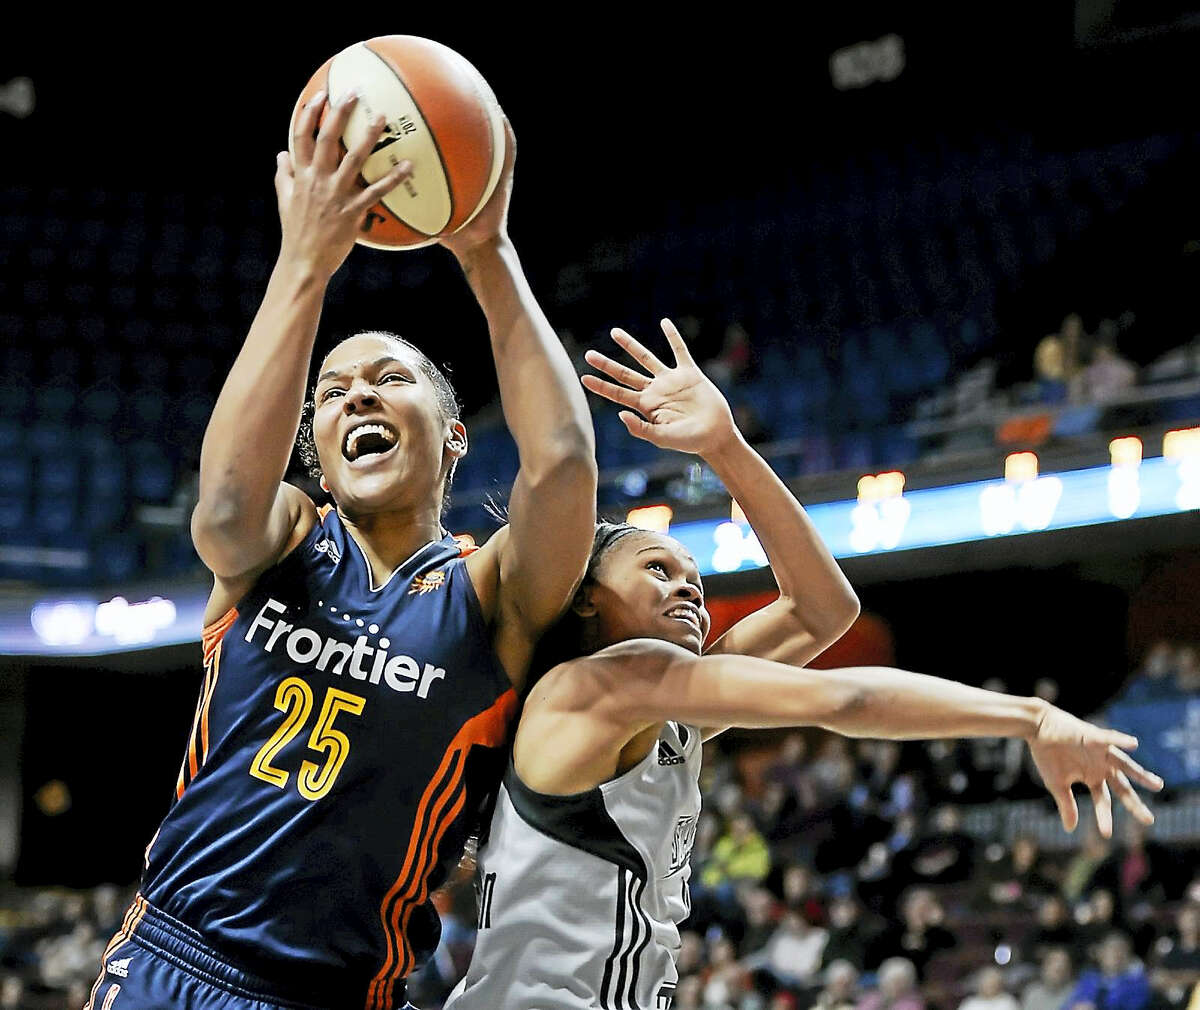 Alyssa Thomas has been the leading rebounder for the Connecticut Sun this season.